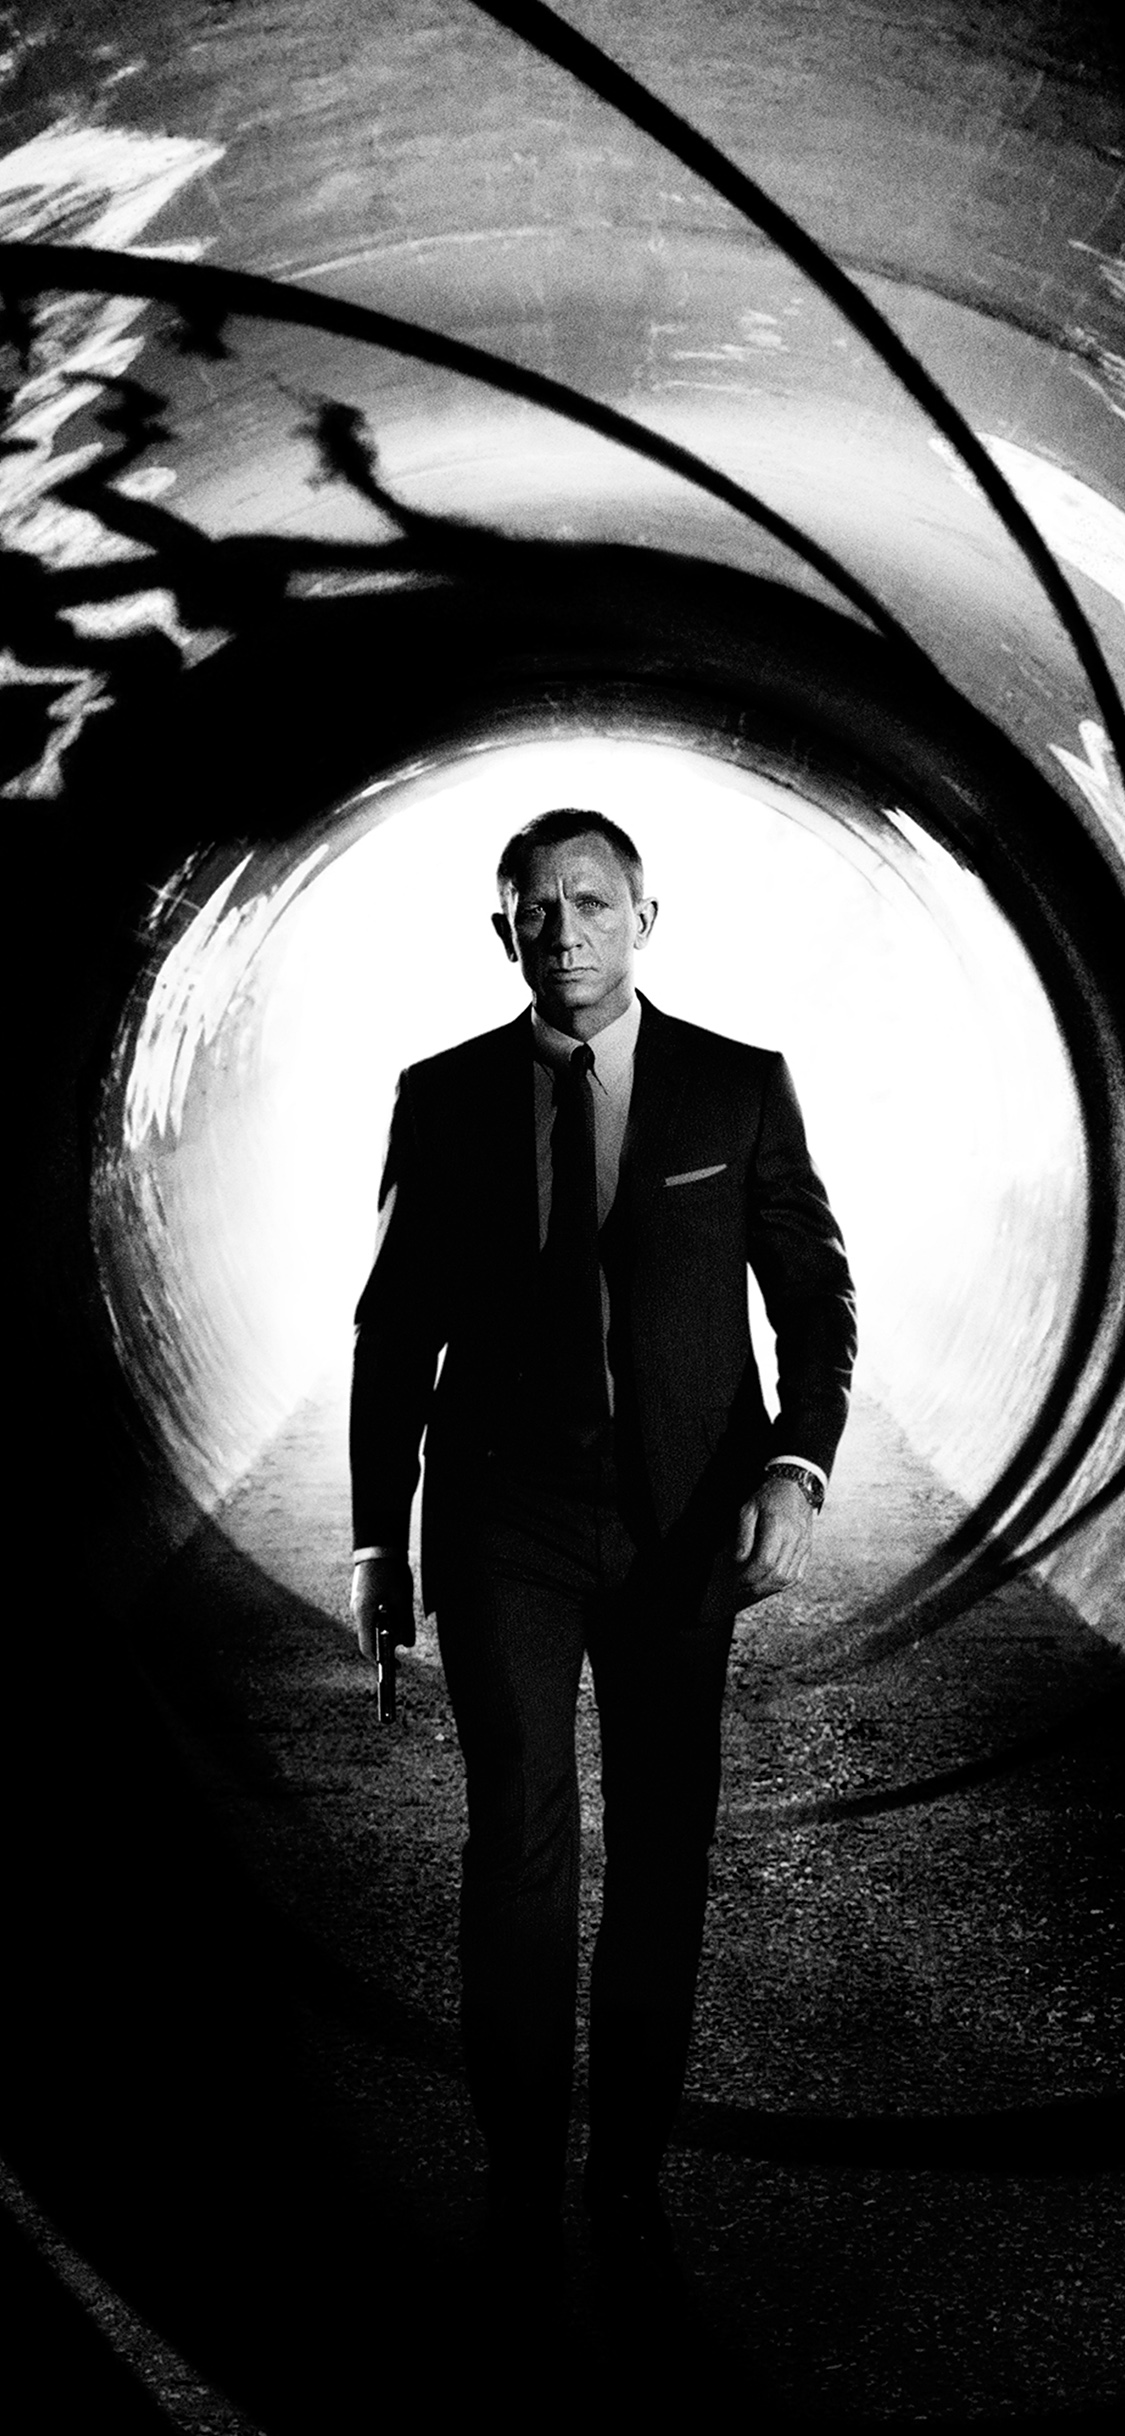 Iphone 5 Car Wallpaper Hg70 James Bond 007 Skyfall Film Poster Papers Co